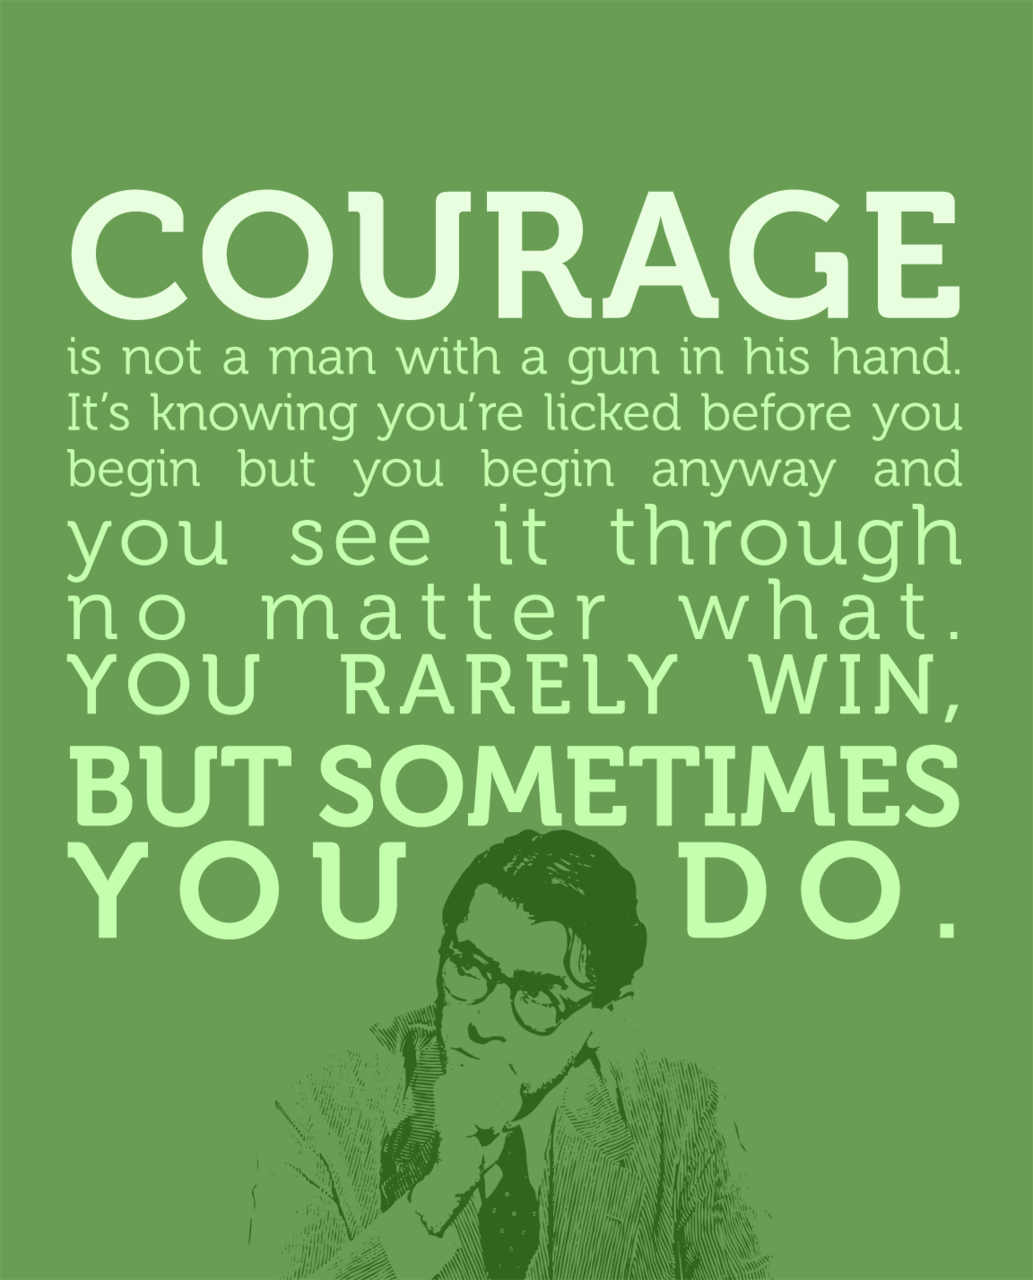 Quotes From Boo Radley With Page Numbers: Atticus Finch Quotes About Racism. QuotesGram